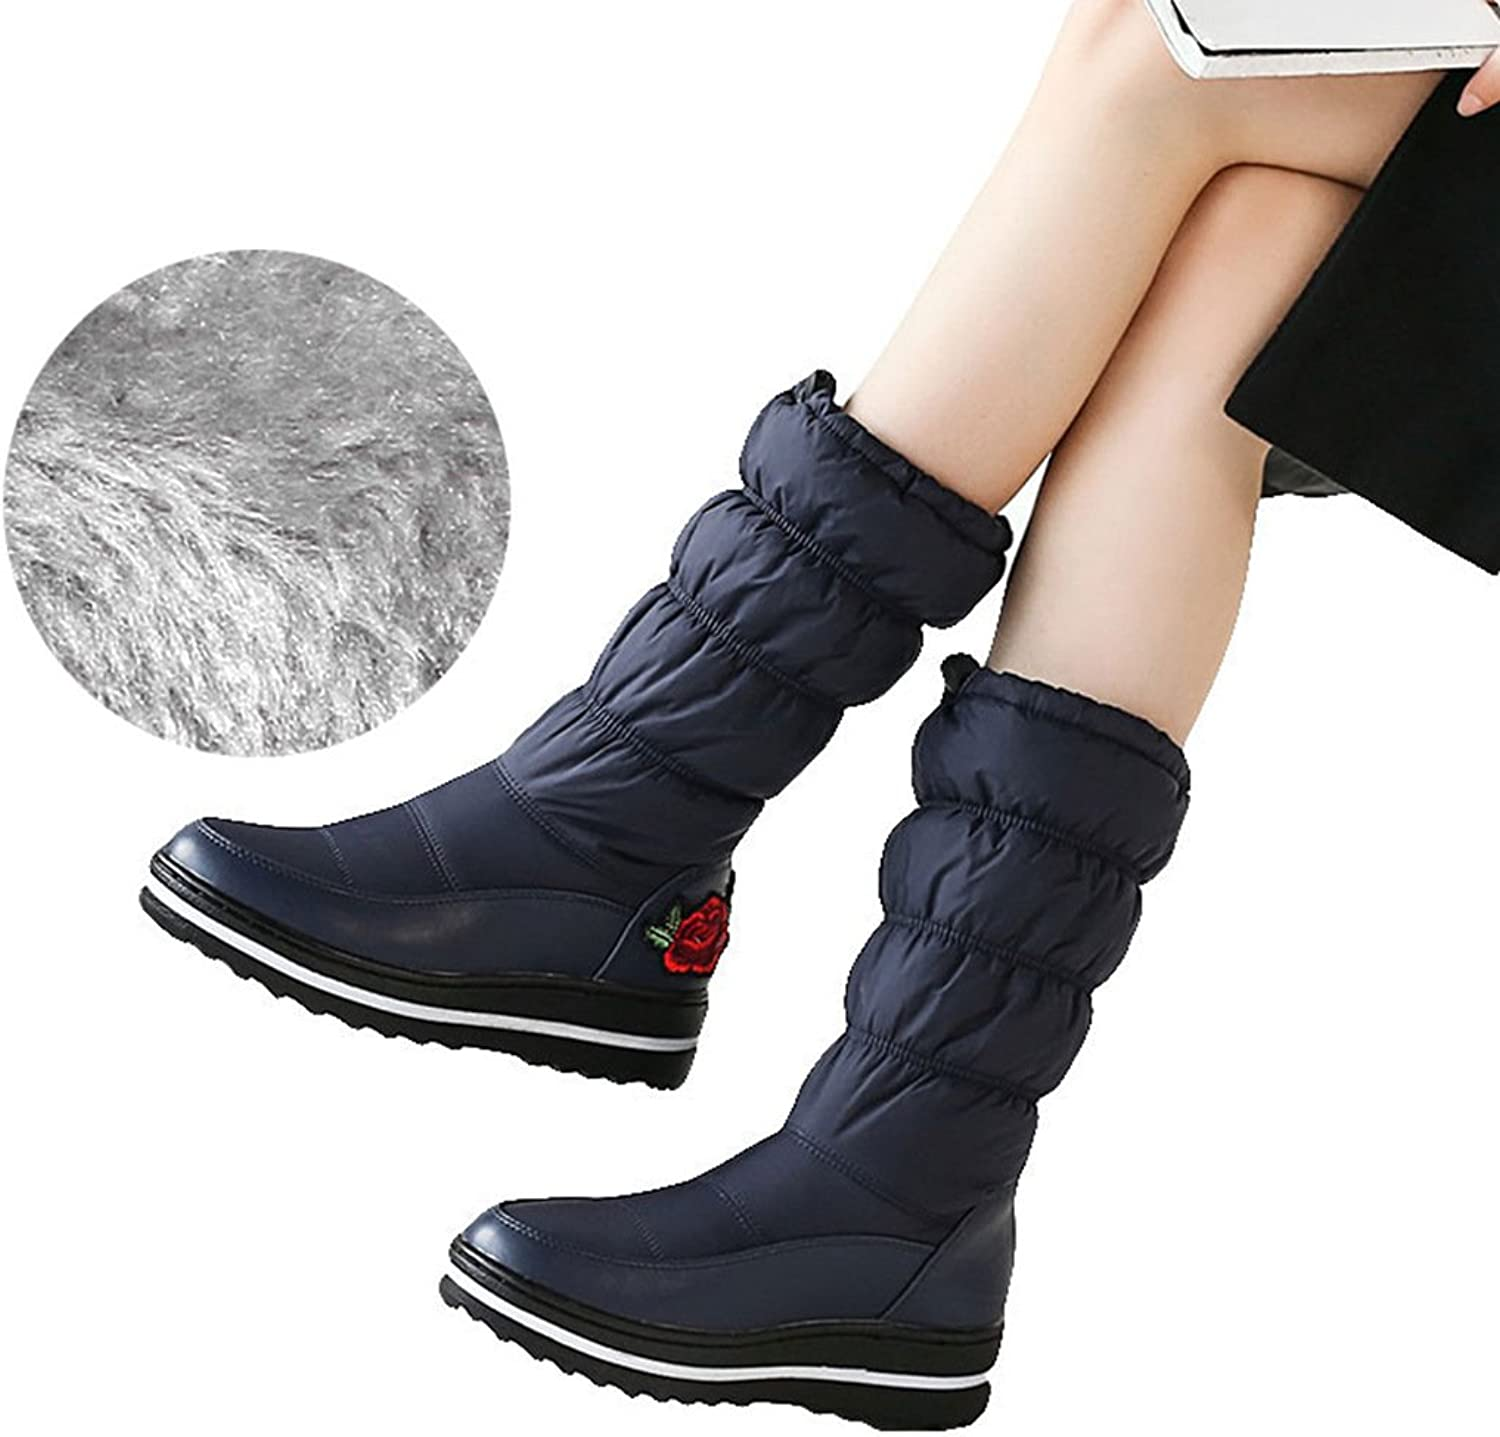 Wetkiss 2018 Women Winter Boots Fur Embroider Plaform Snow Boots Down Cotton Thermal Lady shoes